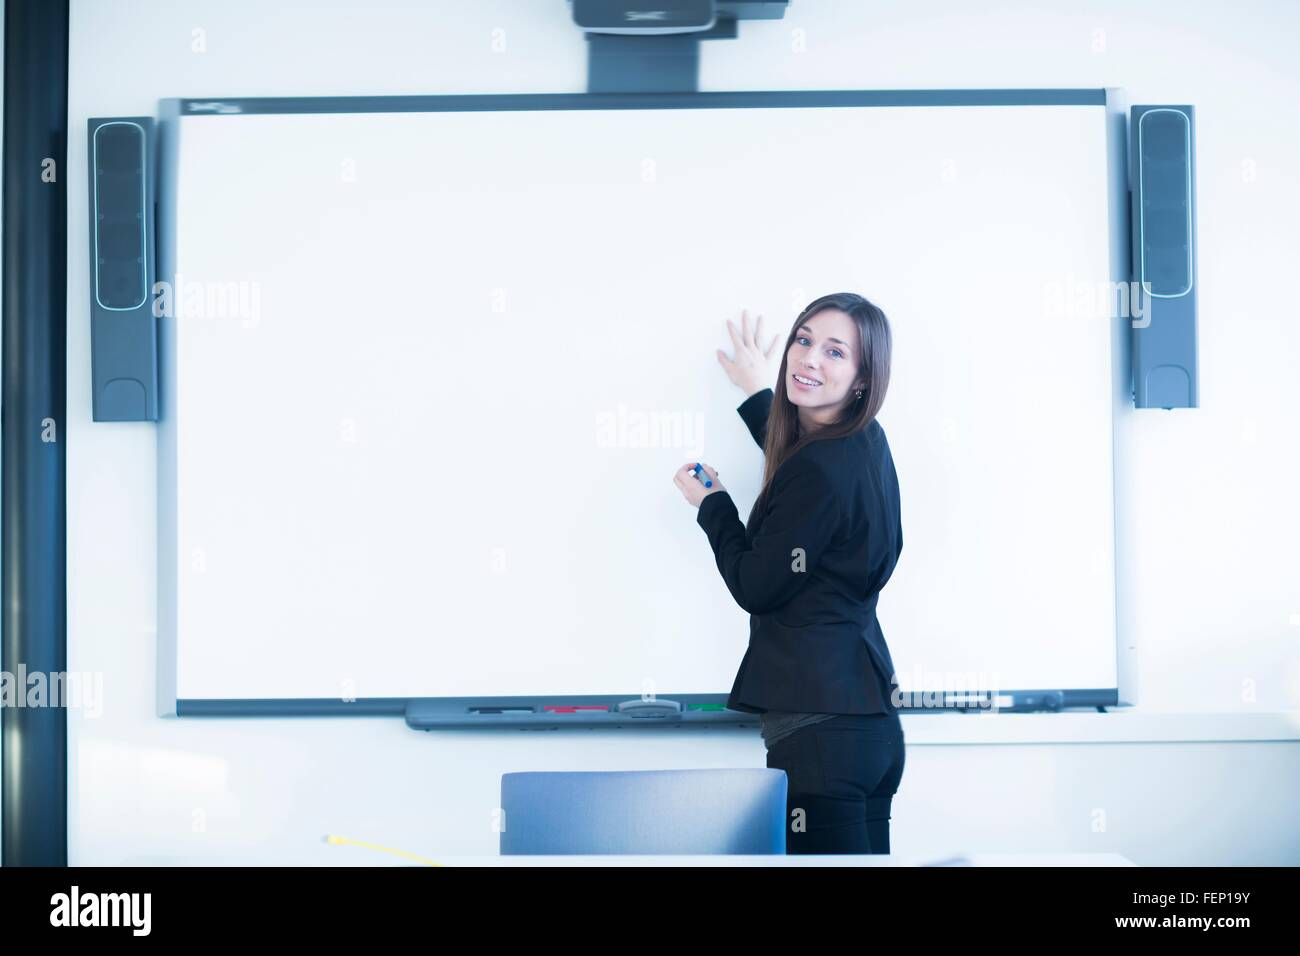 Young woman in office using whiteboard, looking over